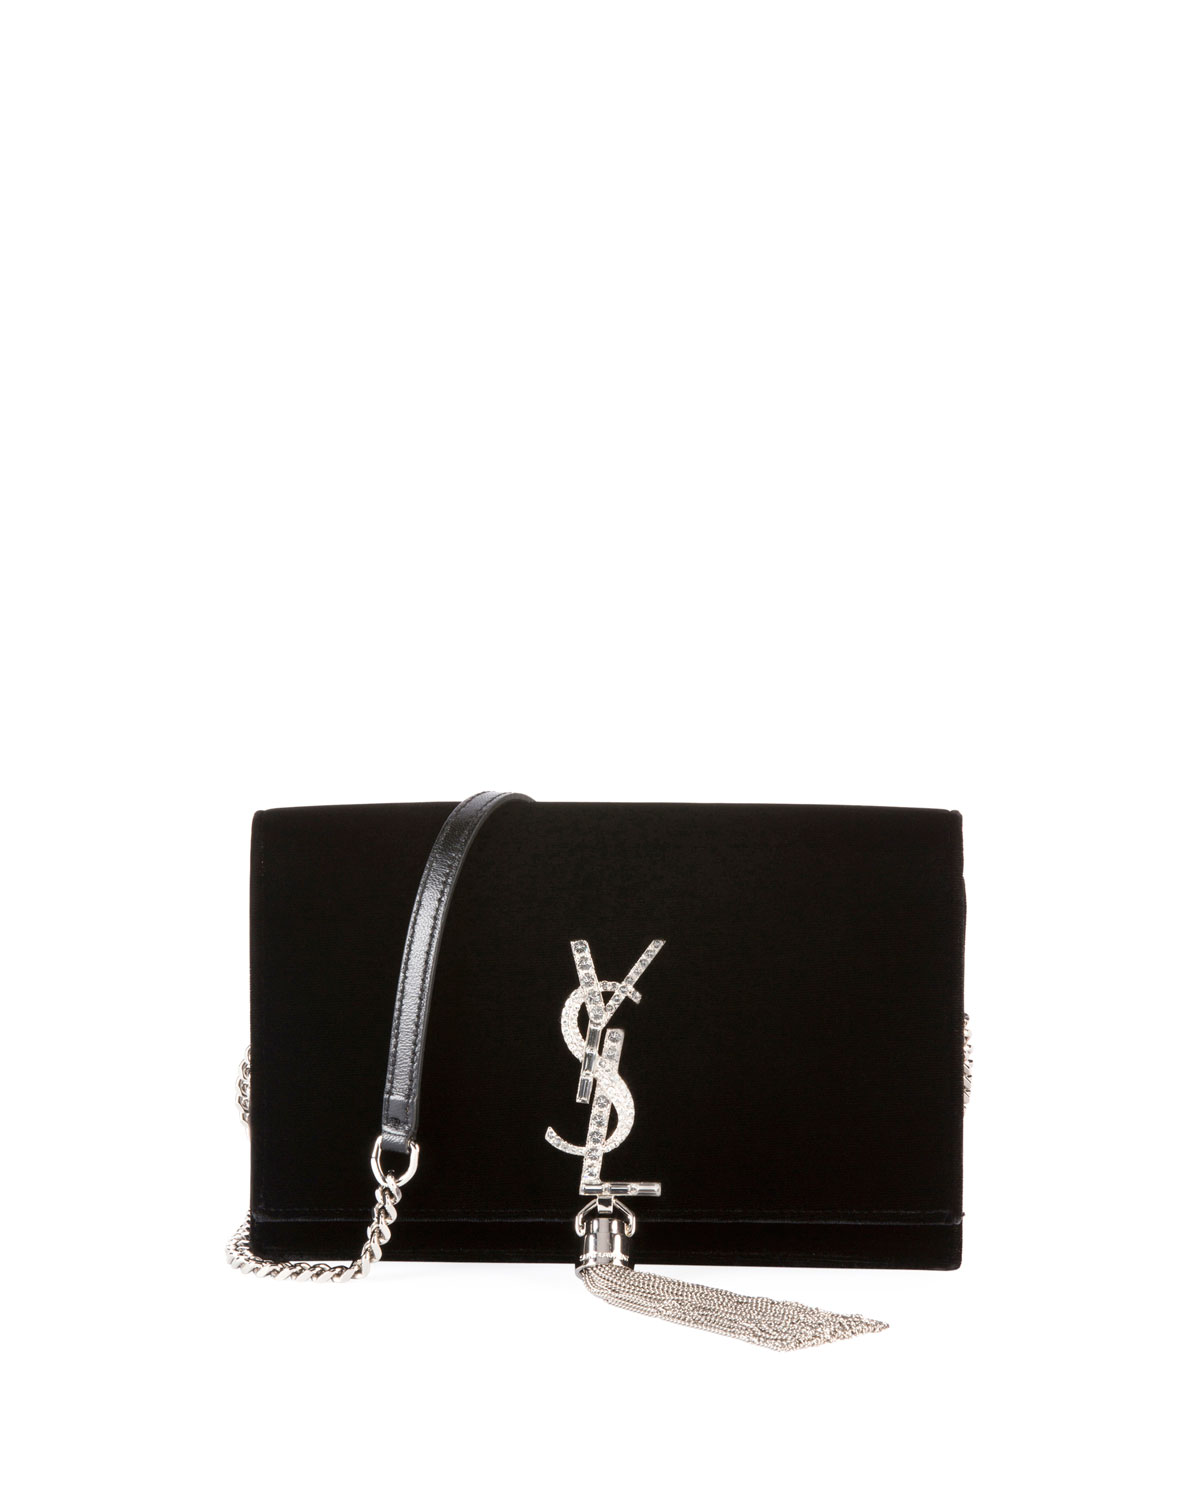 99f16b46b0 Saint LaurentKate Toy Small Crystal-Monogram YSL Tassel Velvet Wallet on a Chain  Bag - Miroir Hardware